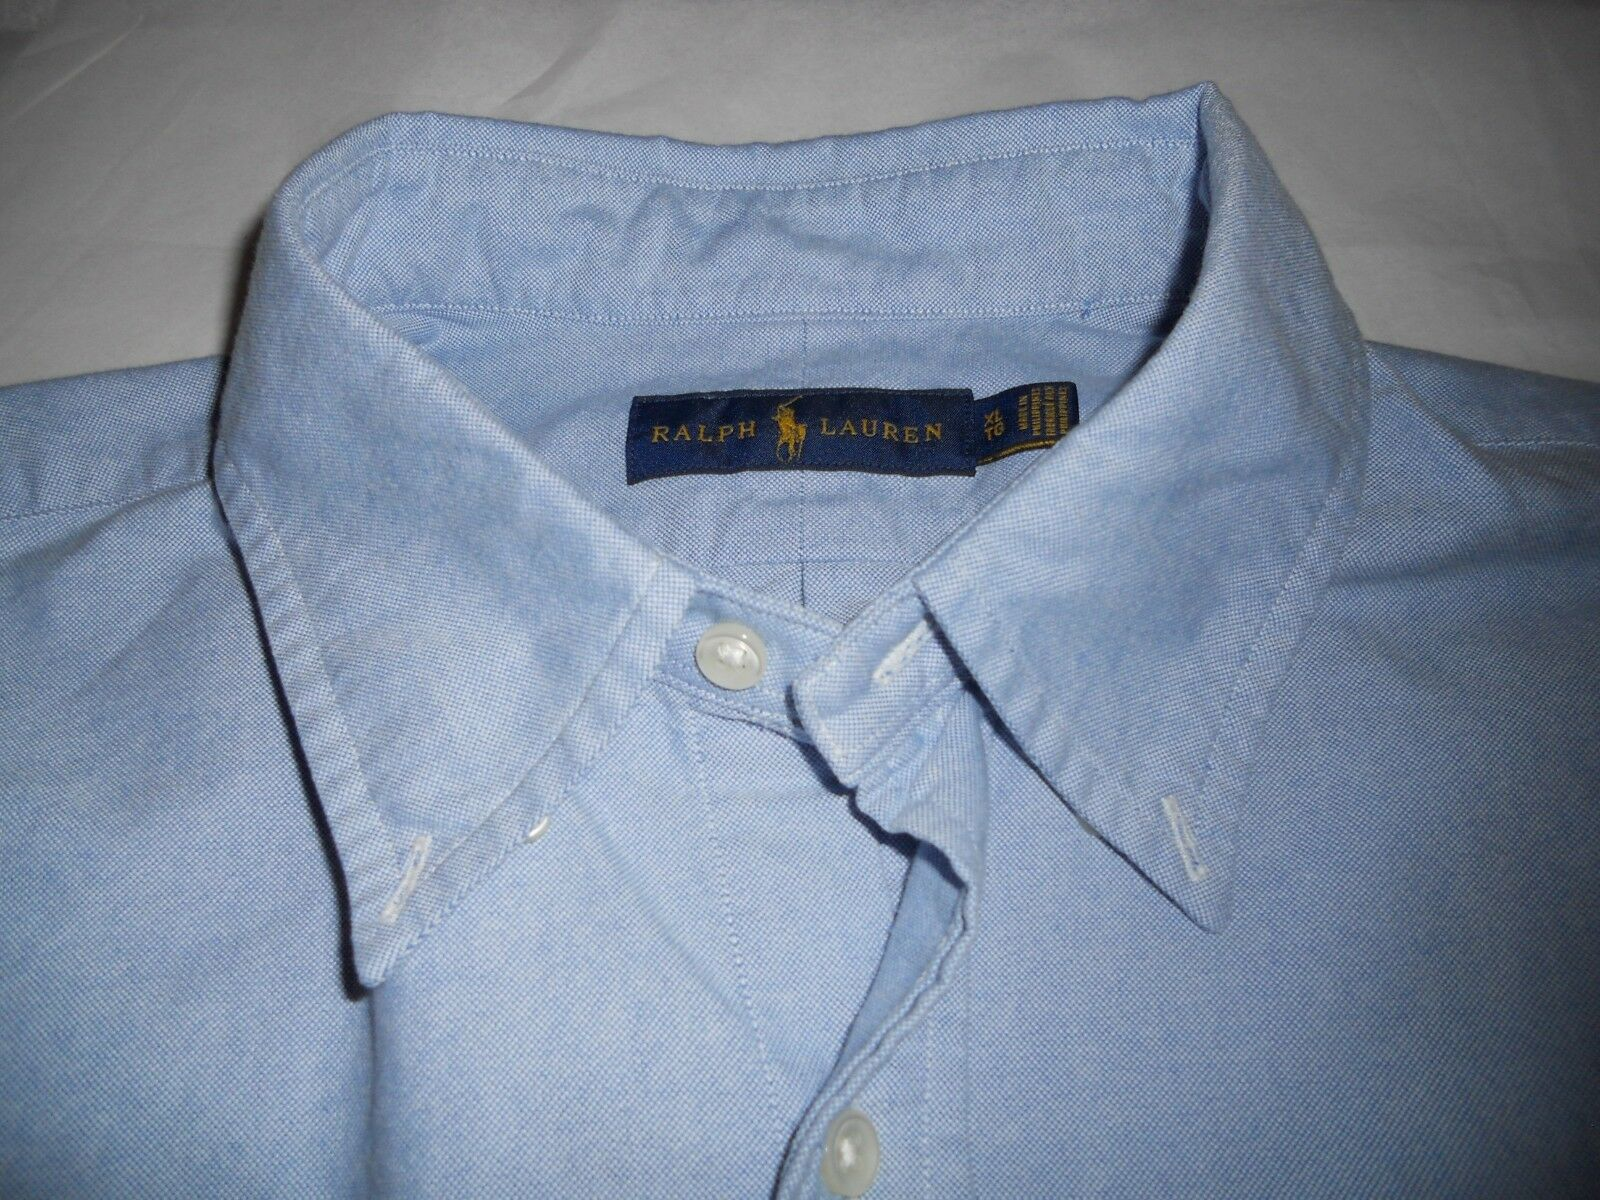 Polo Ralph Lauren Classic Fit Long Sleeve Solid Oxford Shirt, bluee, XL, no tax